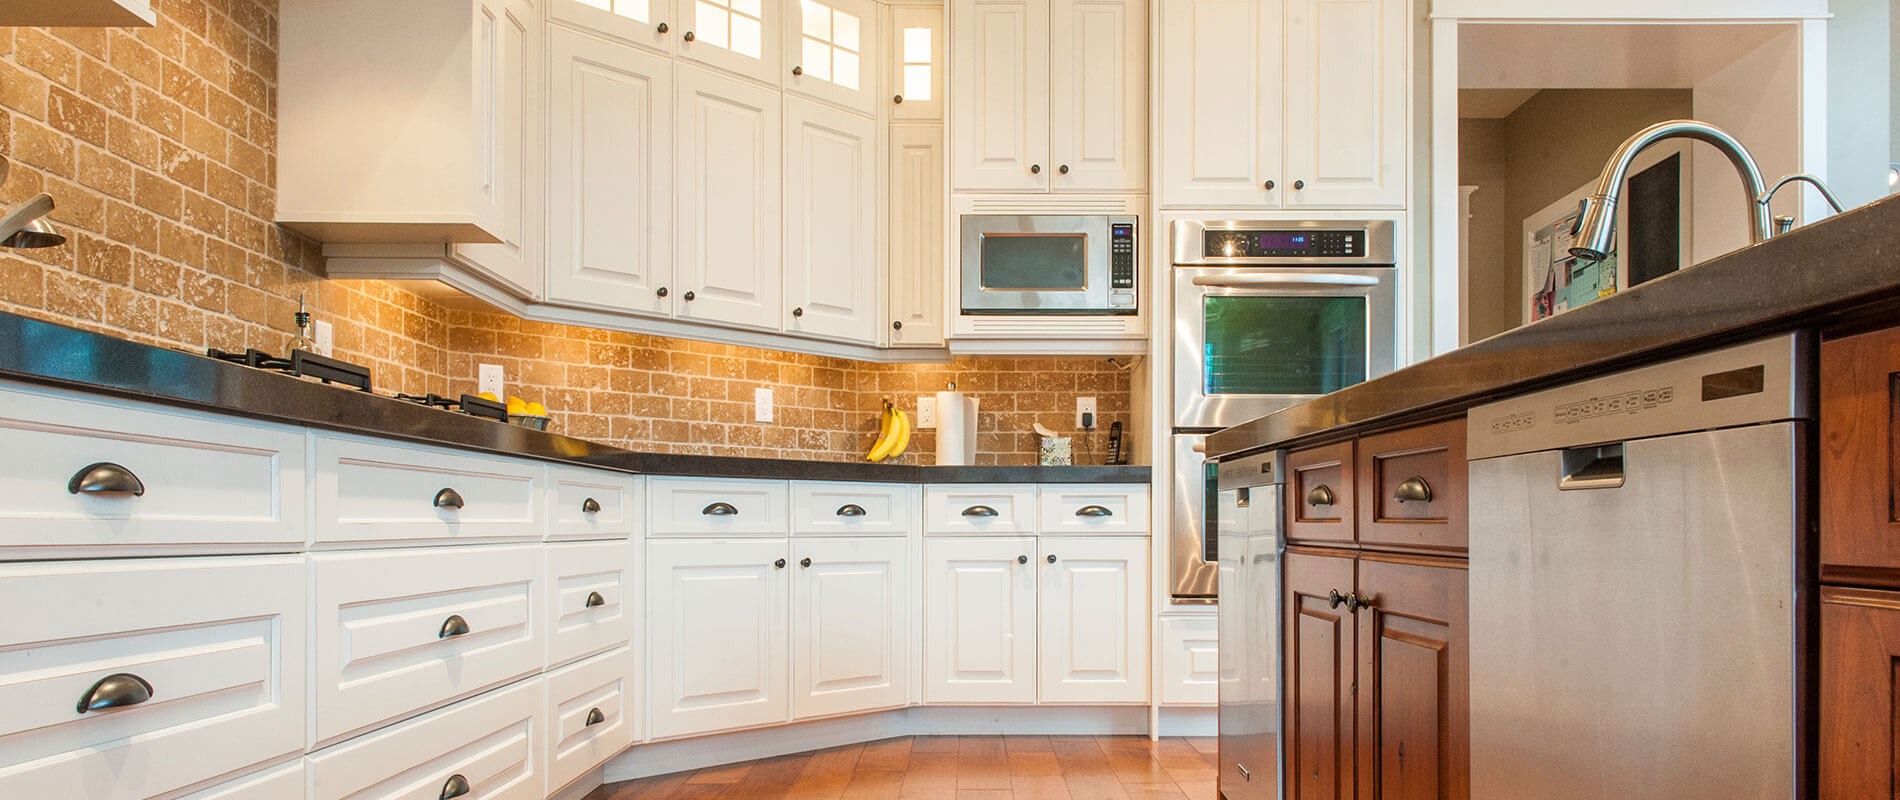 Craftsmen Home Improvements Inc Cincinnati Oh Kitchen Cabinets